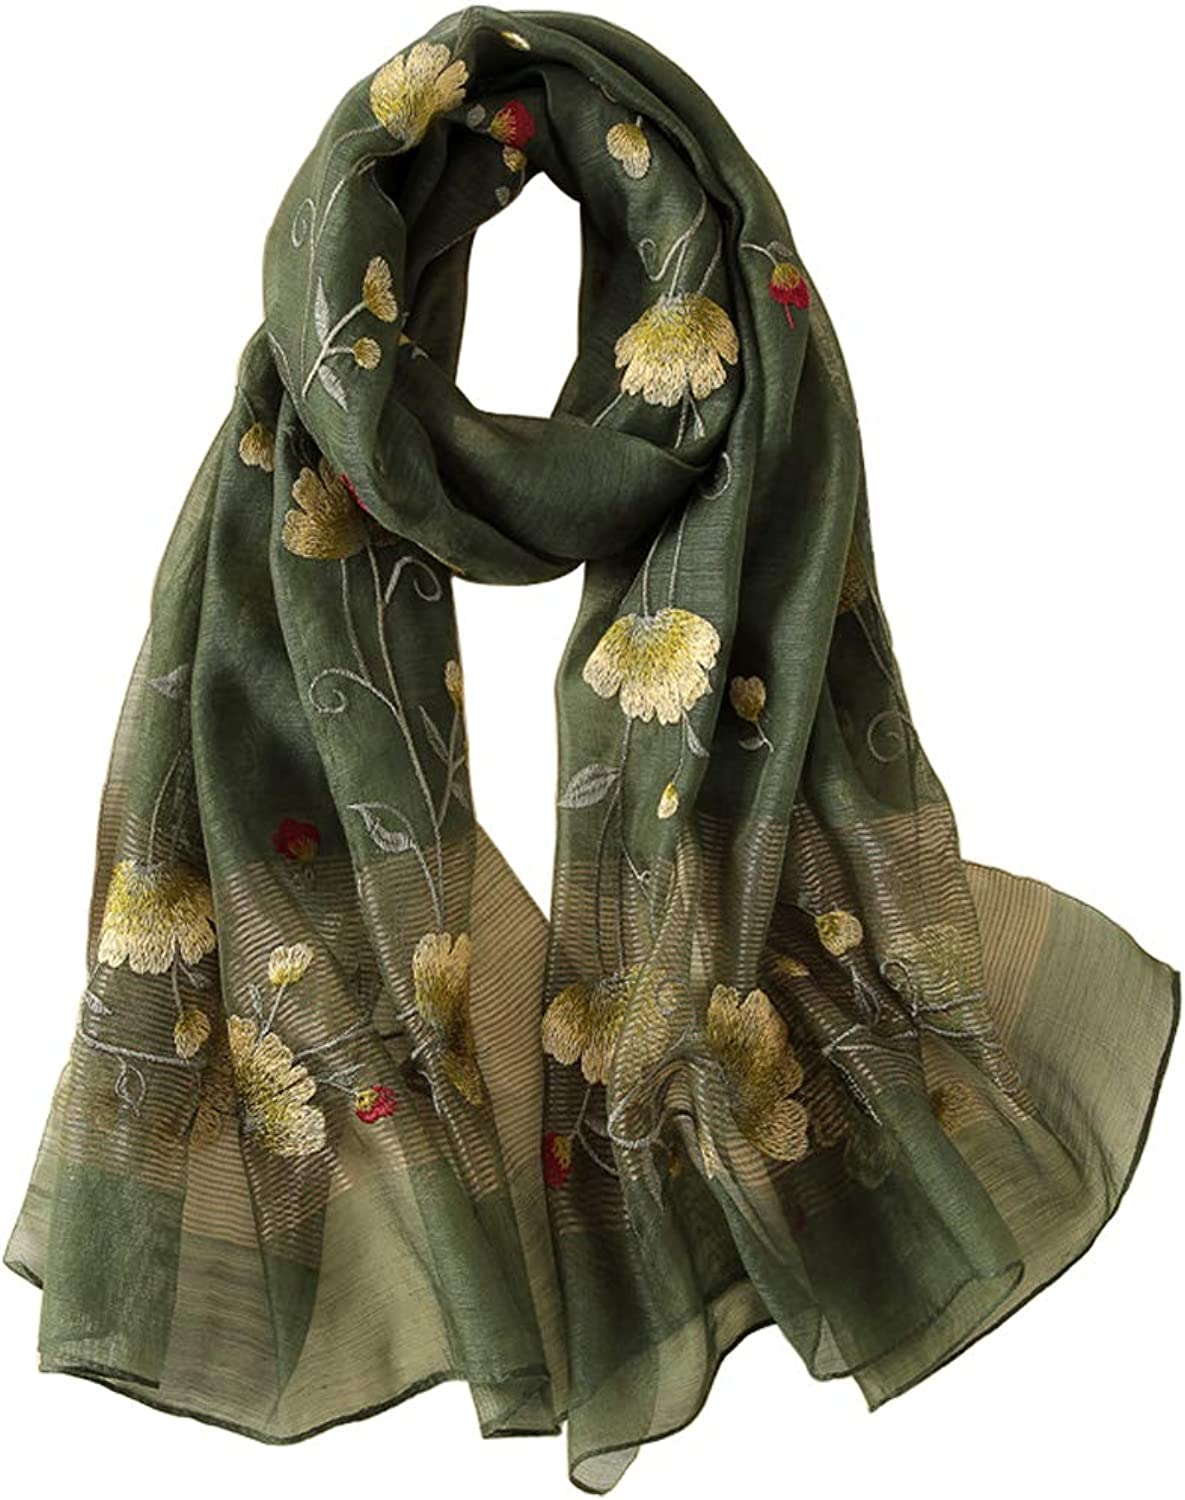 Alysee Women Warm Exquisite Silk&Wool Mixed Embroidered Scarf Headwrap Shawl